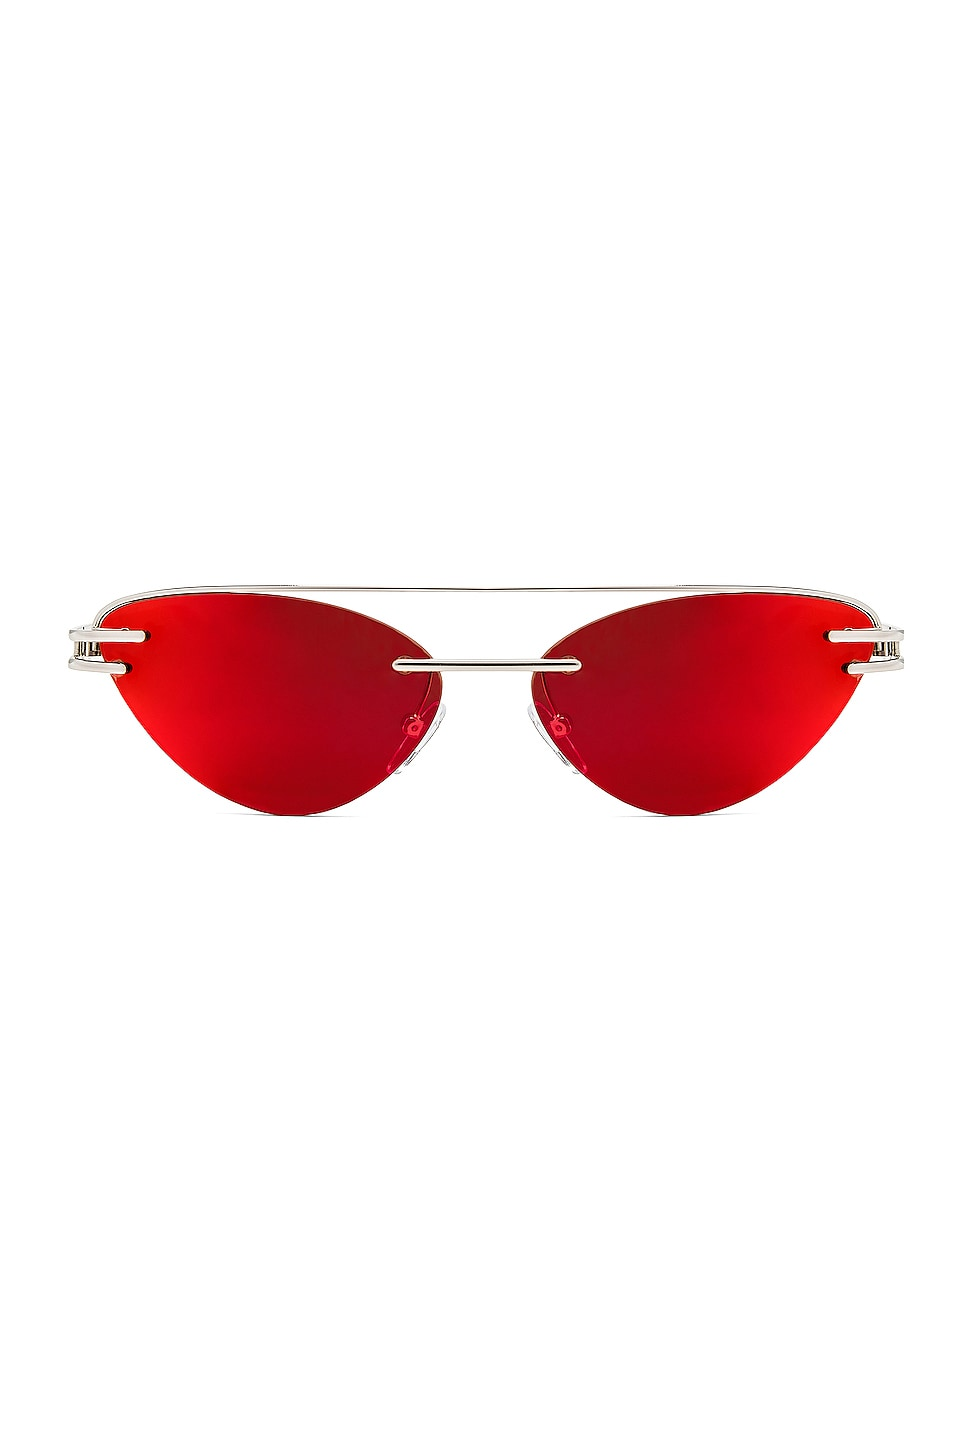 Le Specs x Adam Selman The Coupe in Silver & Red Mirror